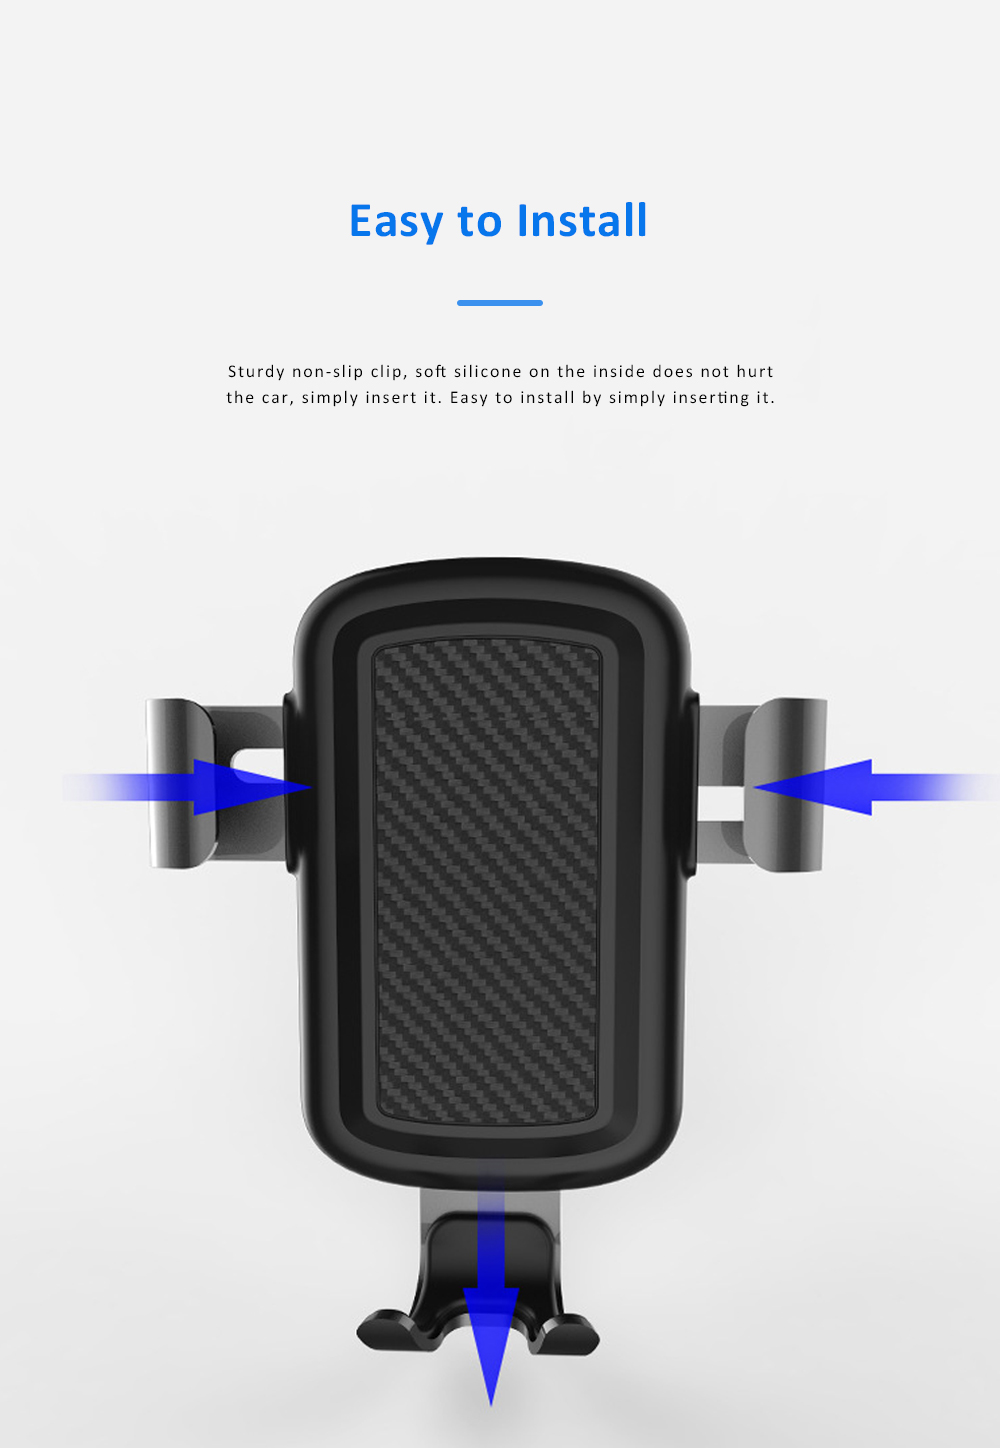 Car Phone Mount for iPhoneX iPhone 8plus Anti-Slip 360°Rotation Air Vent Car Phone Holder with Gravity Sensor 6